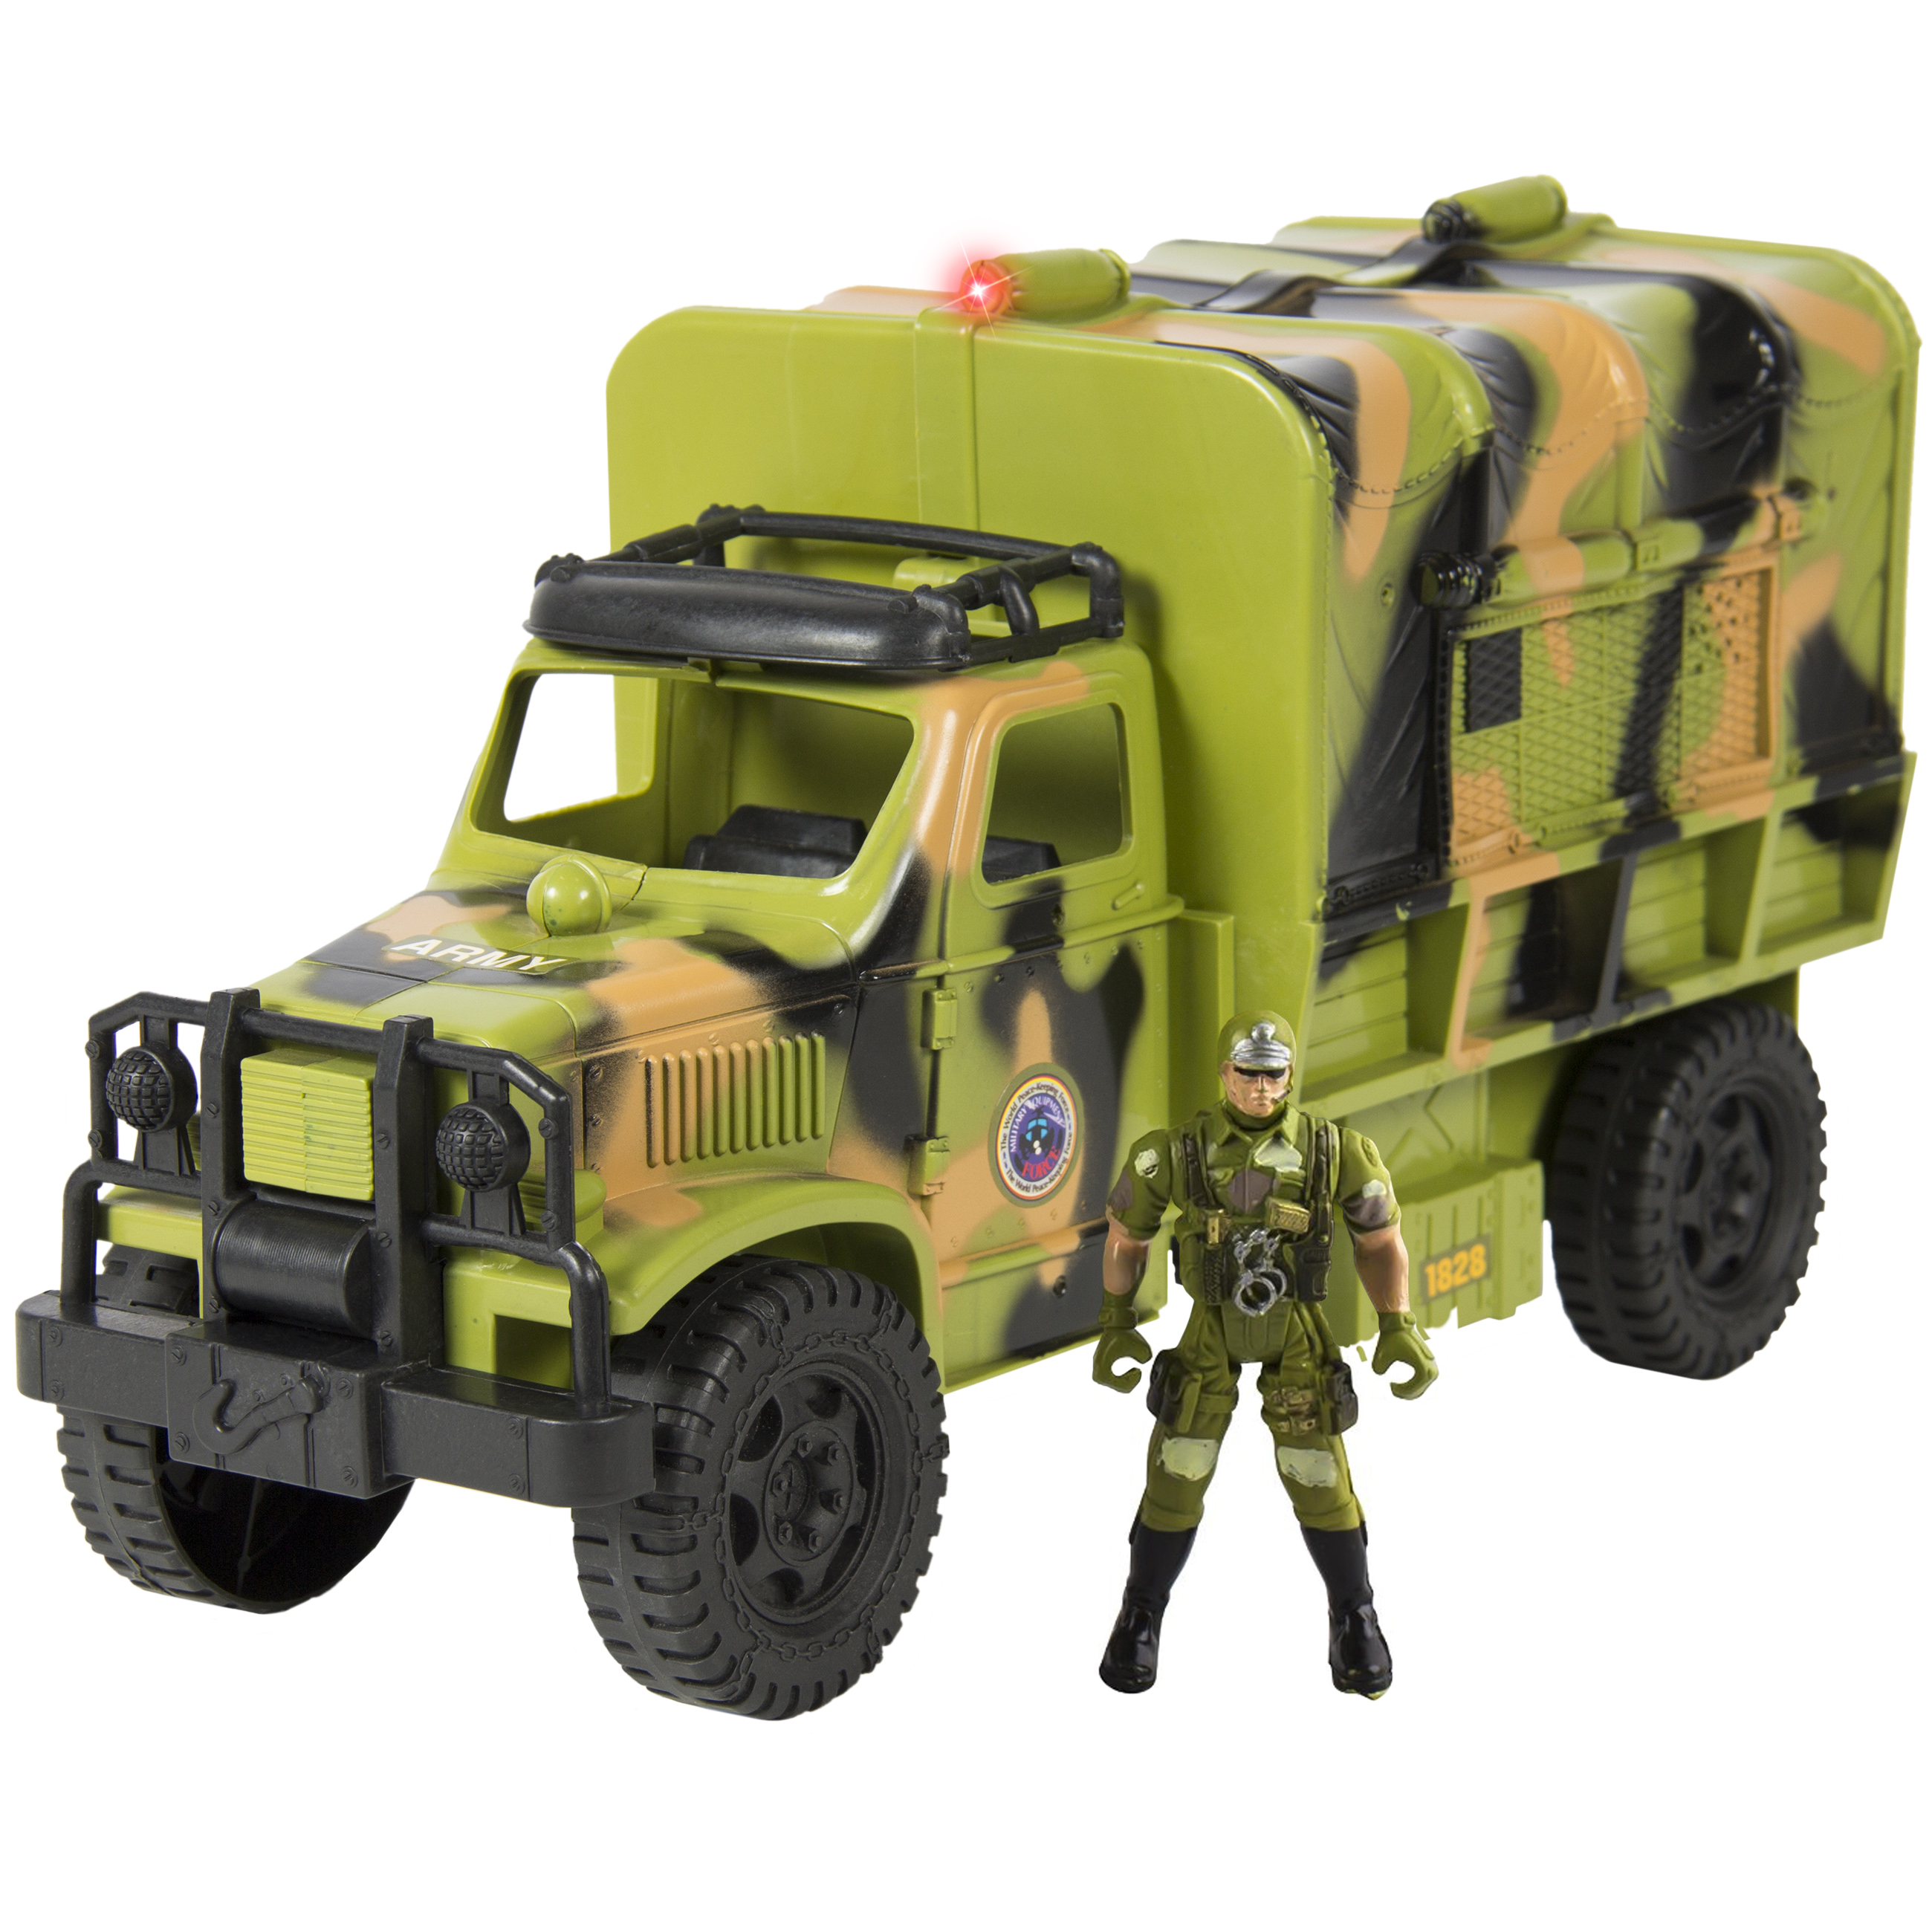 Toy Military Army Fighter Truck With Lights & Sounds Soldier Figurine Included